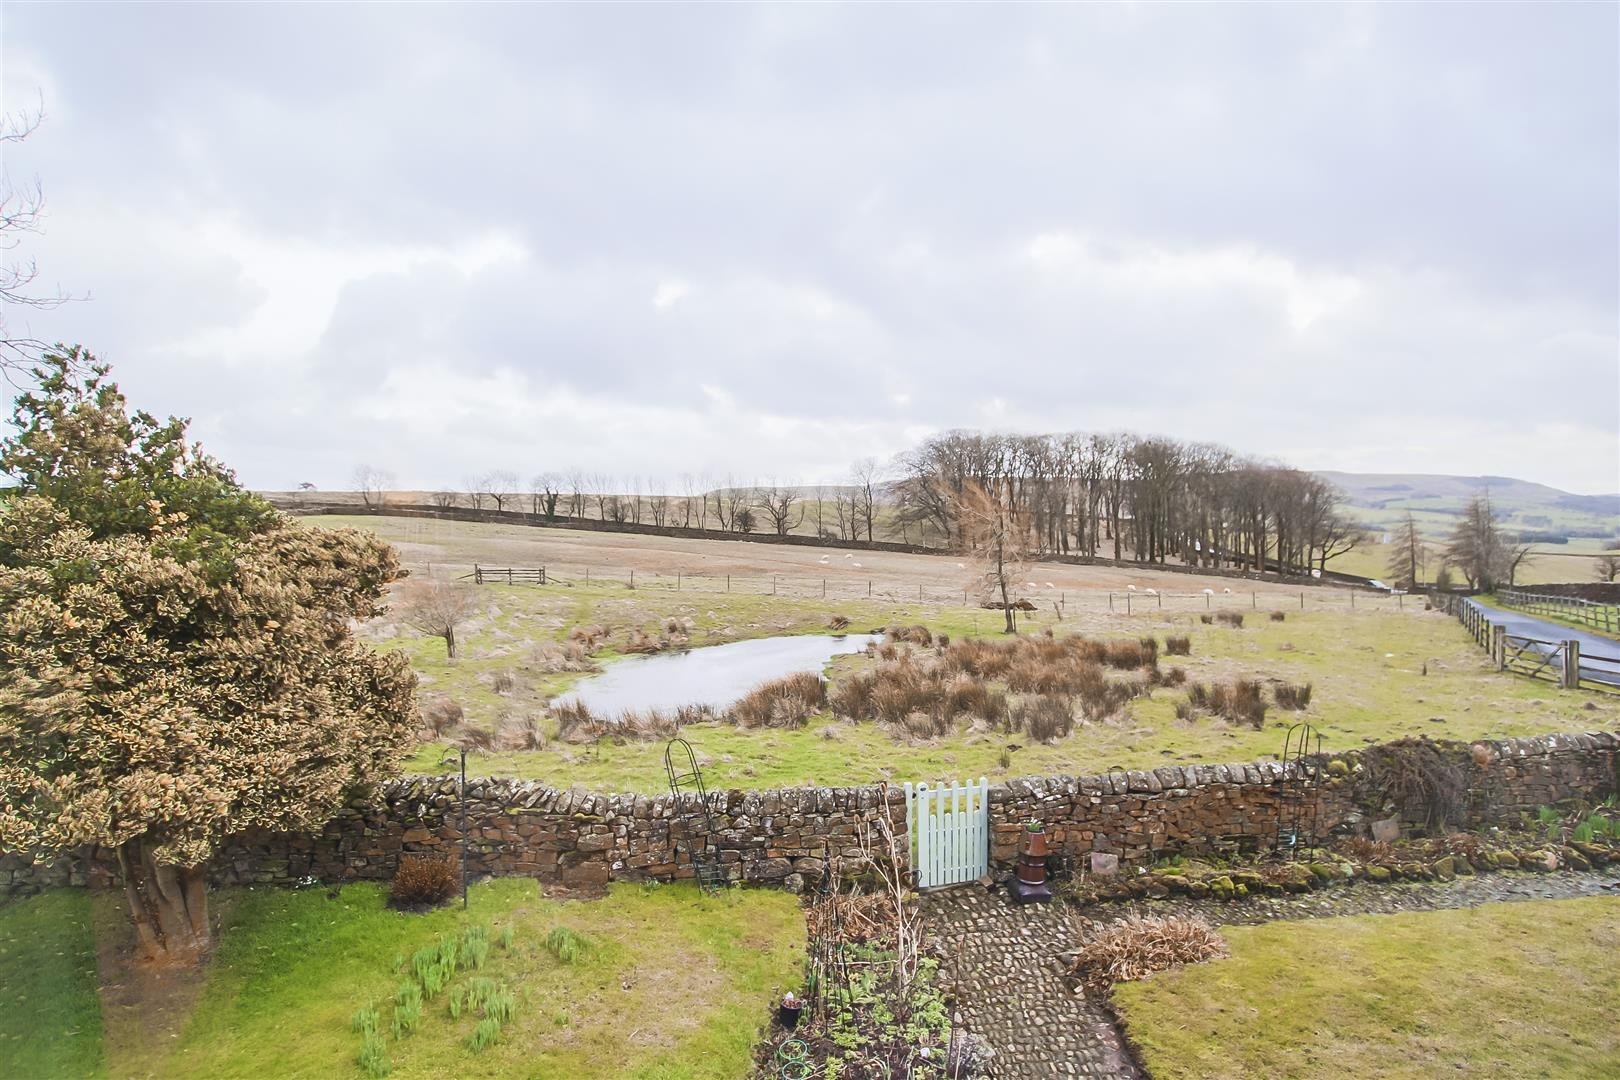 4 Bedroom House For Sale - View of Land